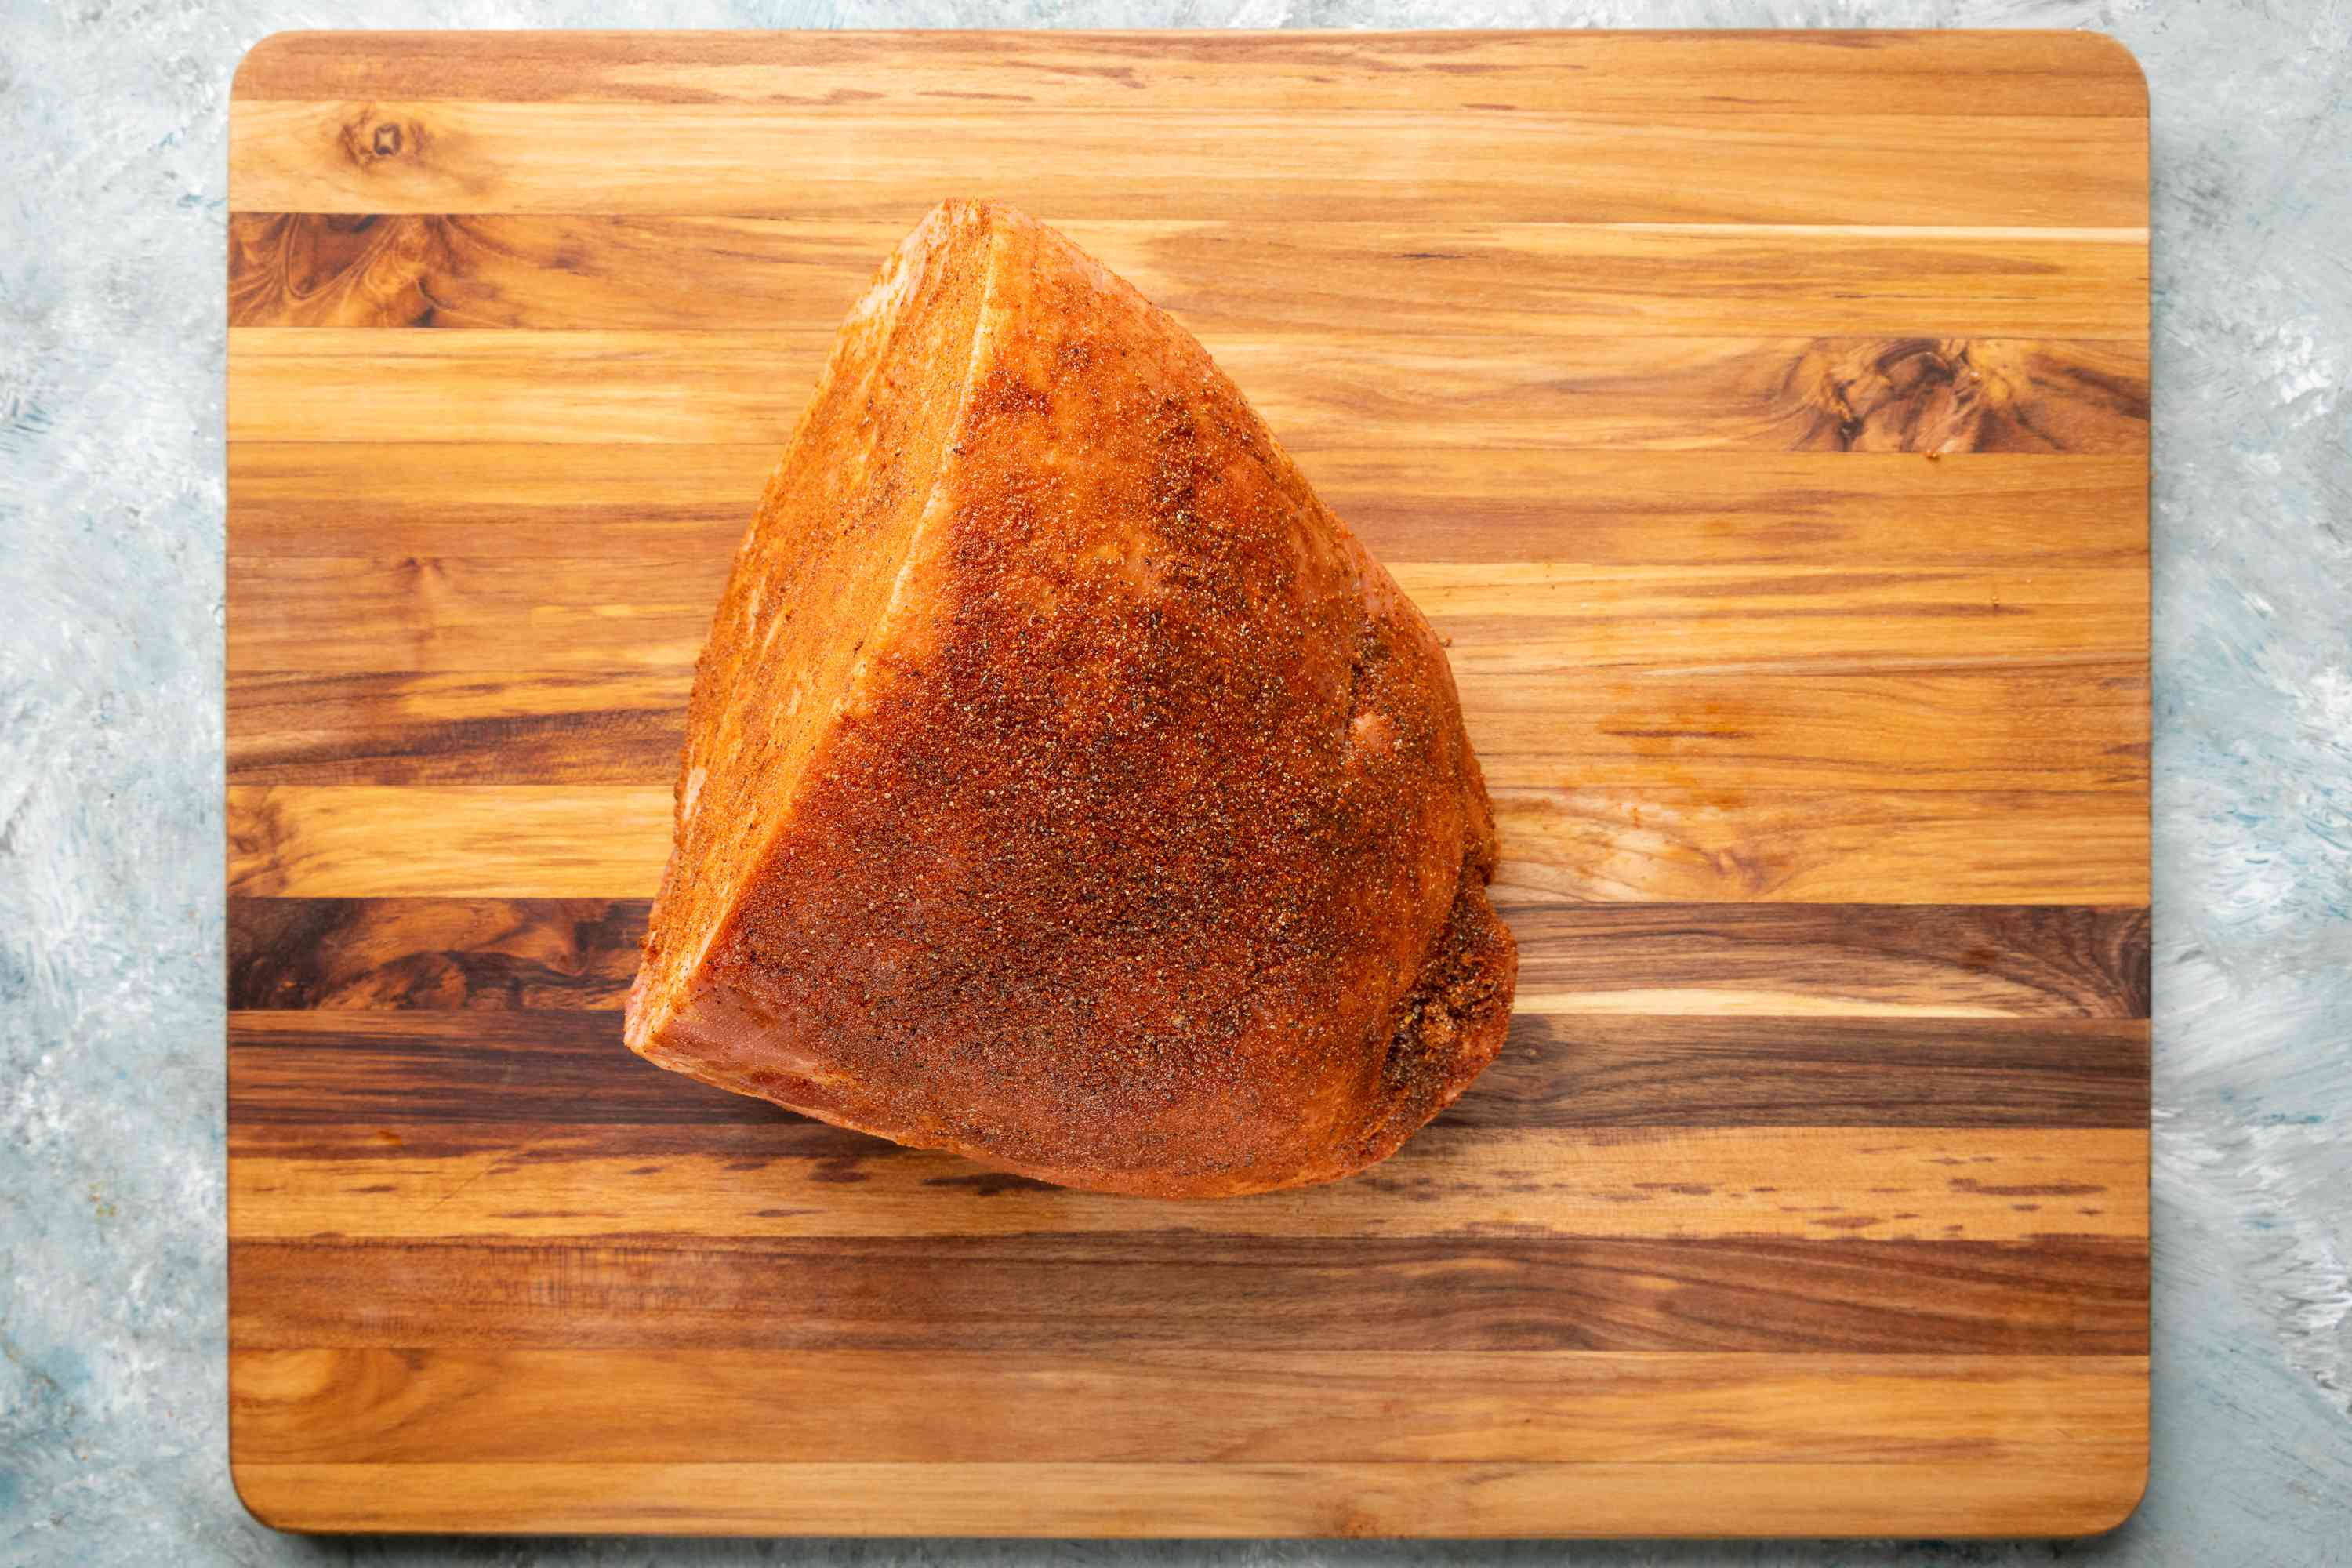 Ham with dry rub after it was refrigerated